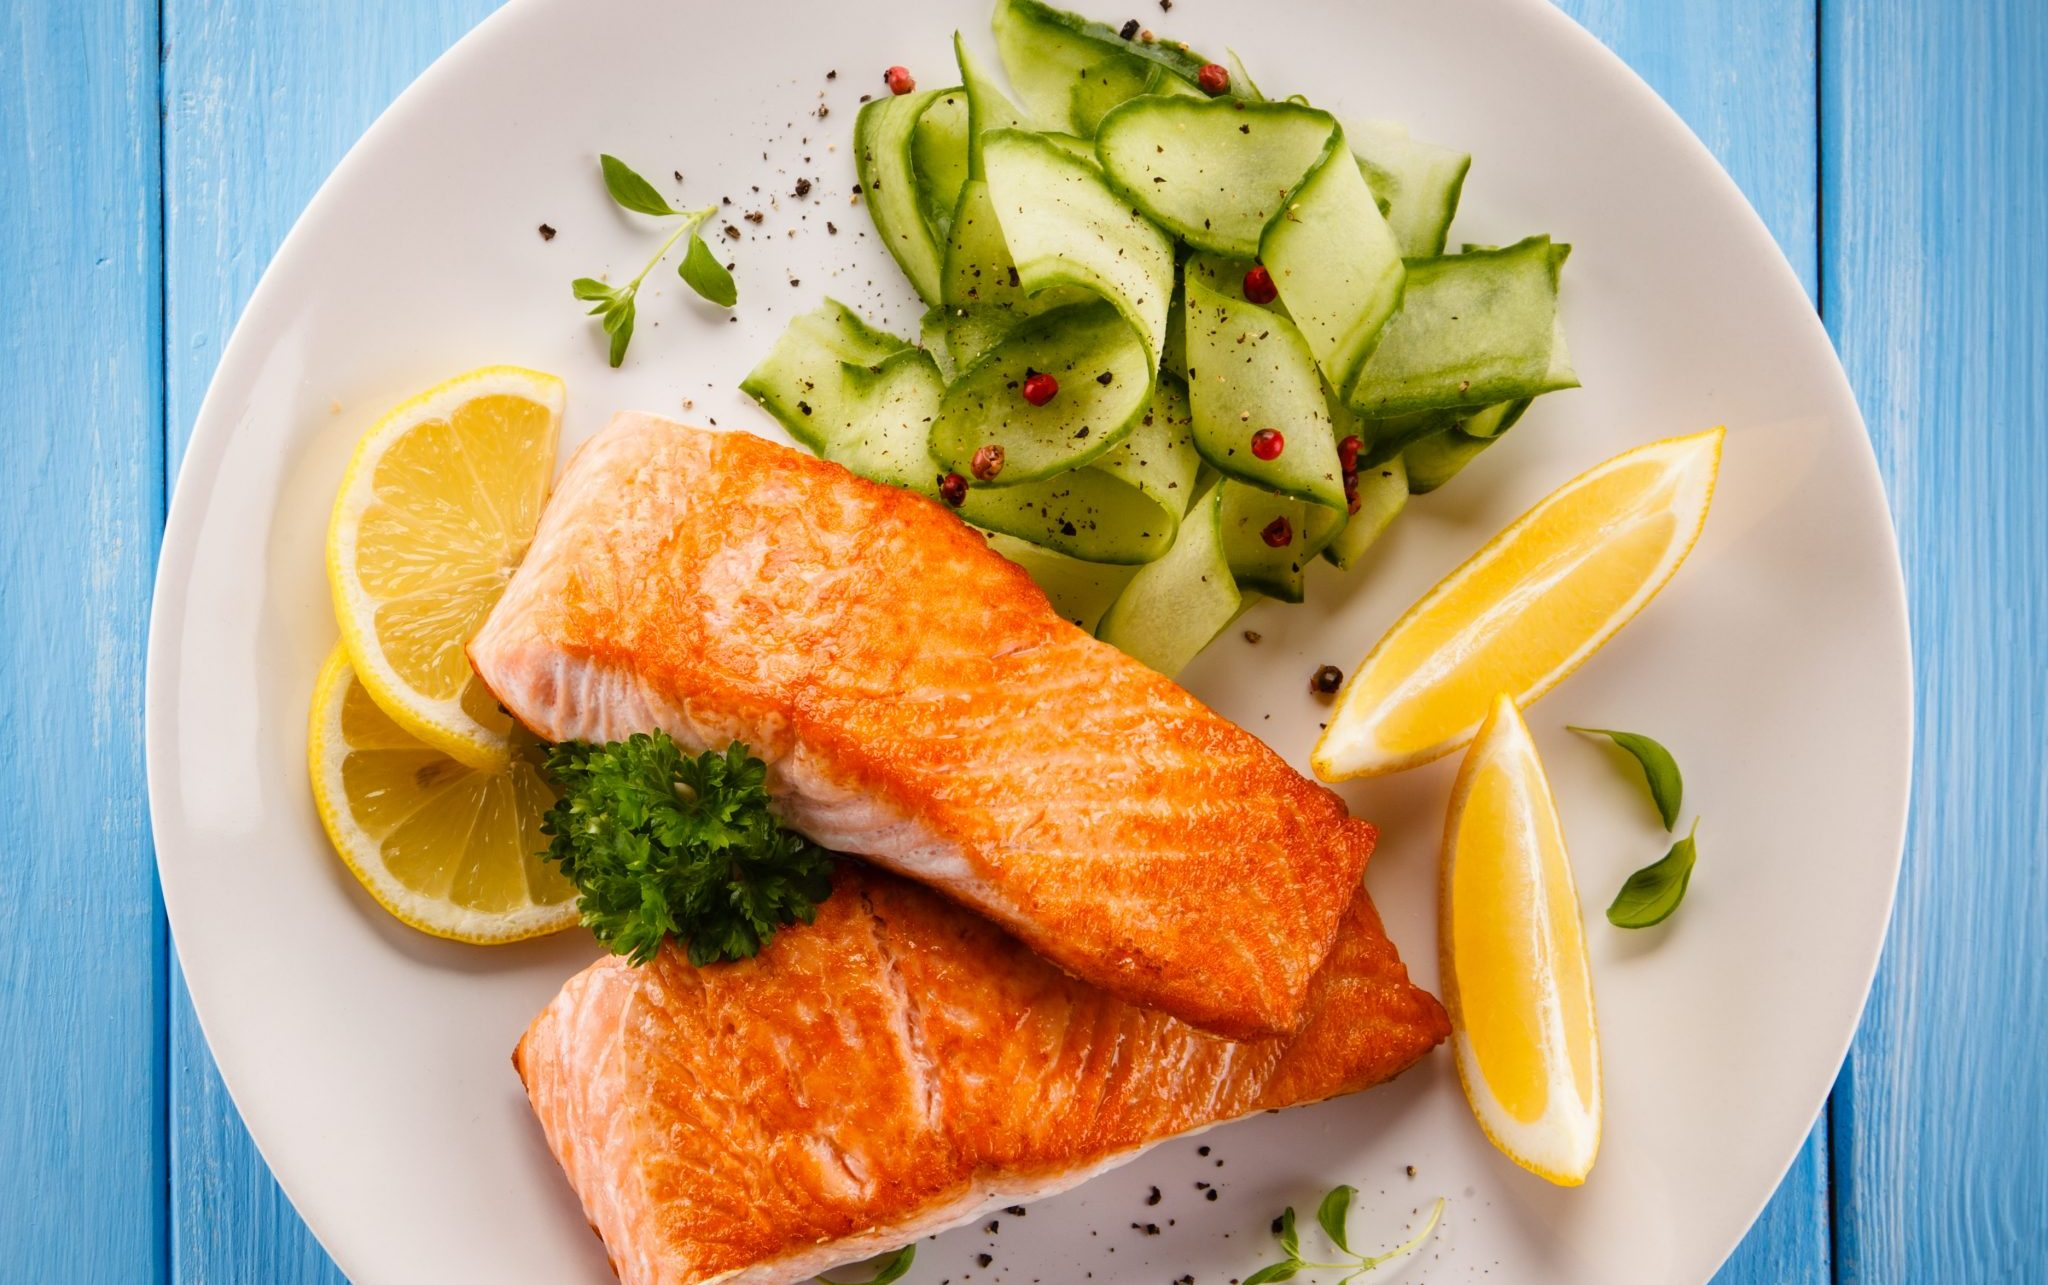 salmon and salad